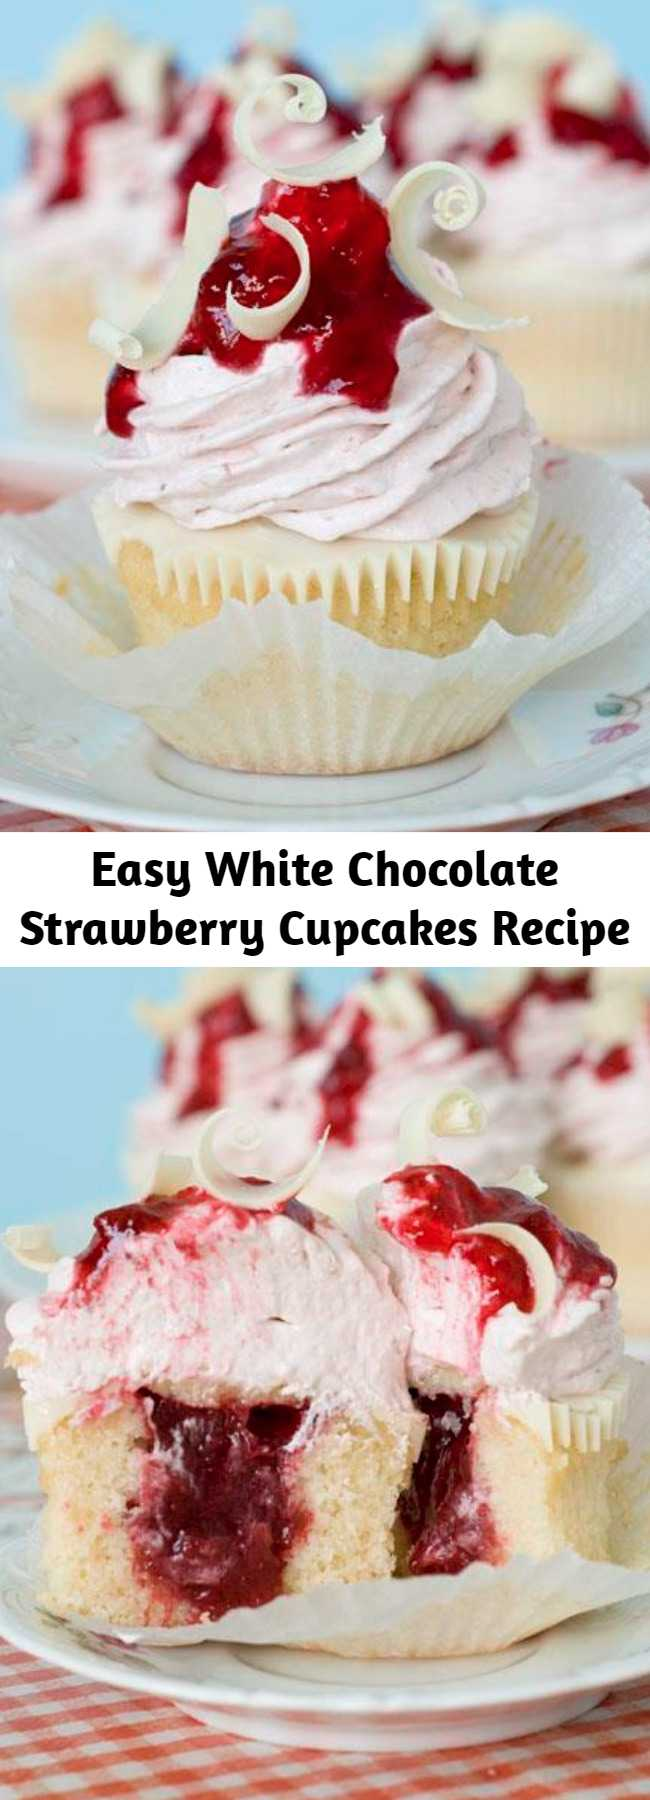 Easy White Chocolate Strawberry Cupcakes Recipe - White Chocolate Strawberry Cupcakes are moist and dense vanilla cupcakes with strawberry filling! Top these decadent cupcakes with a layer of melted white chocolate and some strawberry-white chocolate cream cheese frosting. You won't believe your taste buds when you try these sweet strawberry cupcakes with jam!